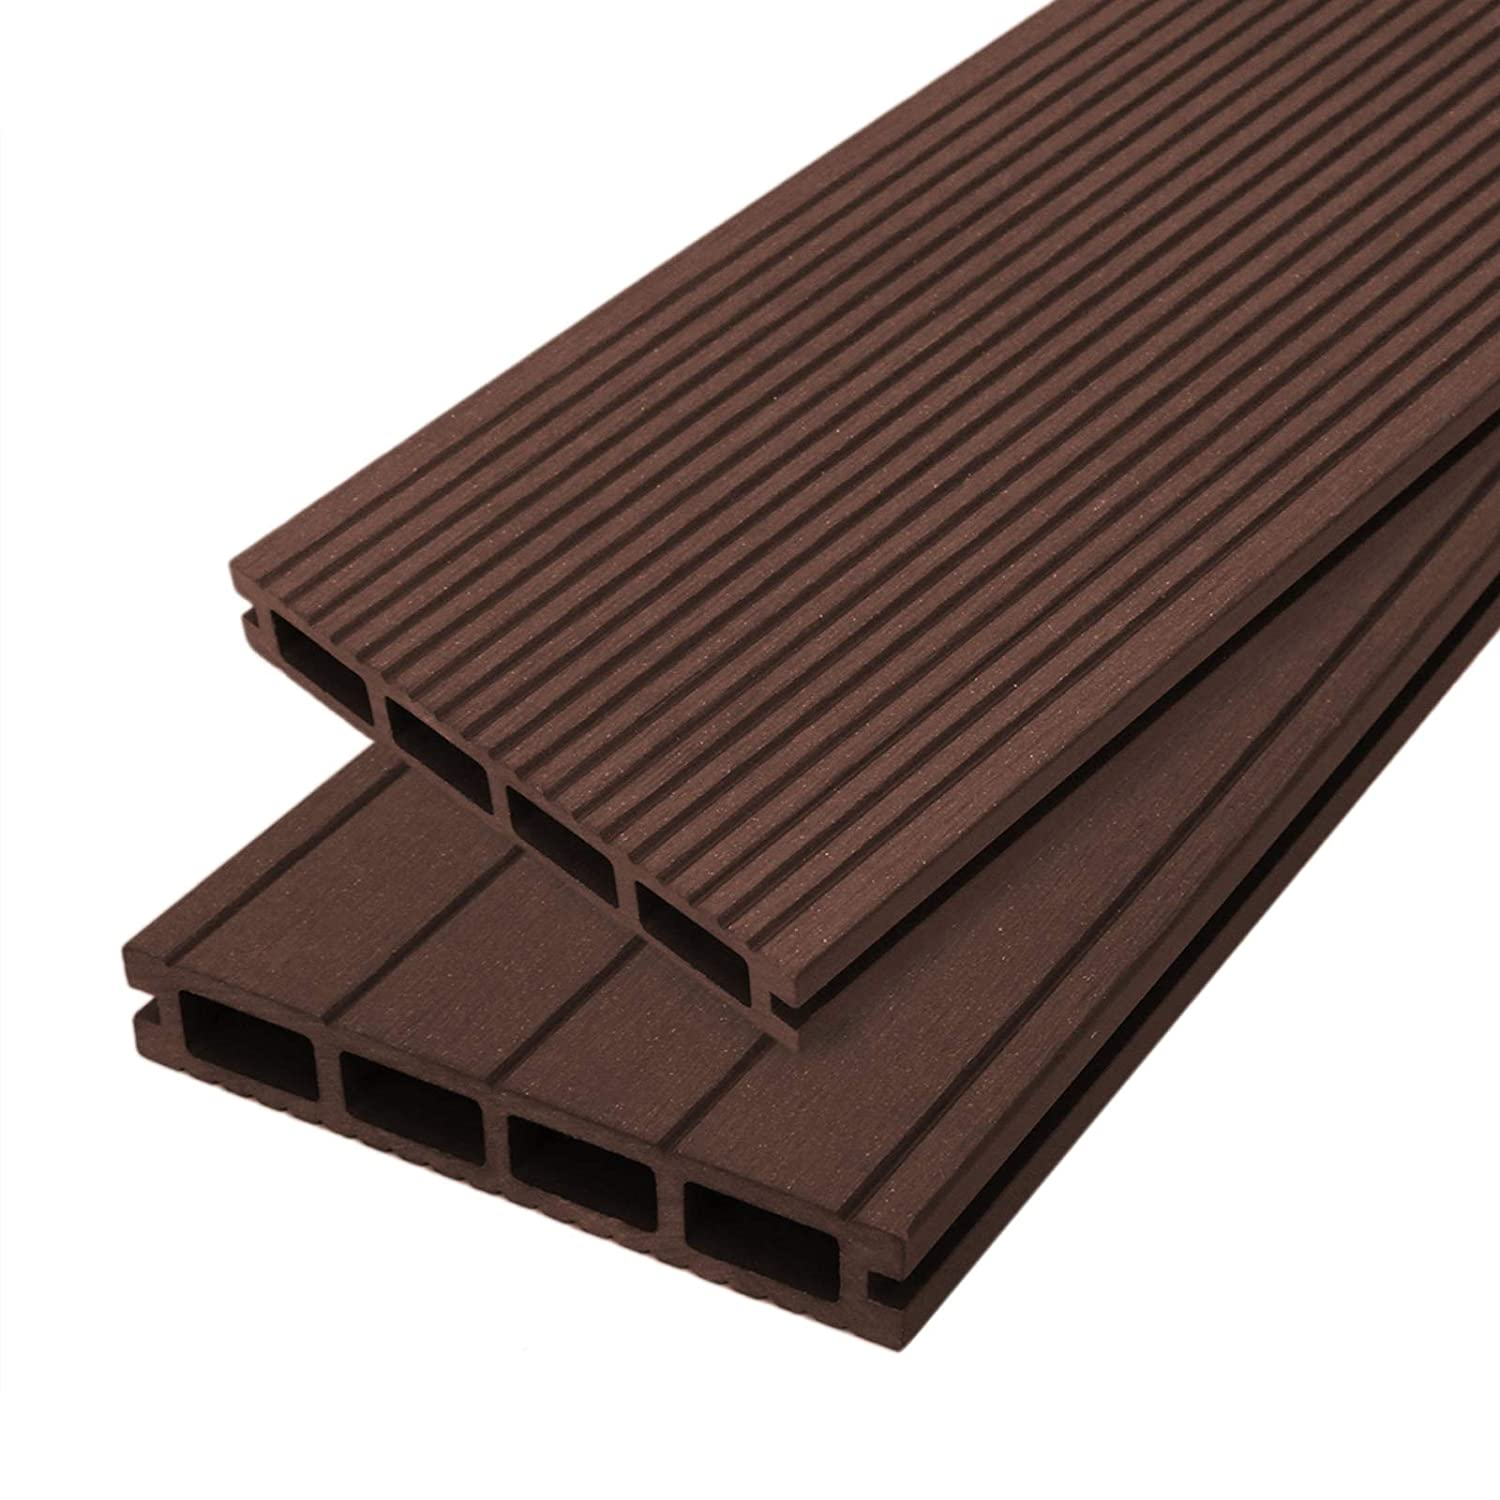 5 SQM Jardí Composite Decking Boards Conker Brown Wood Effect WPC Pack Garden Outdoor Patios Terrace Hot Tub Tiles (incl. Fixing Screws & Clips)(5 SQM)